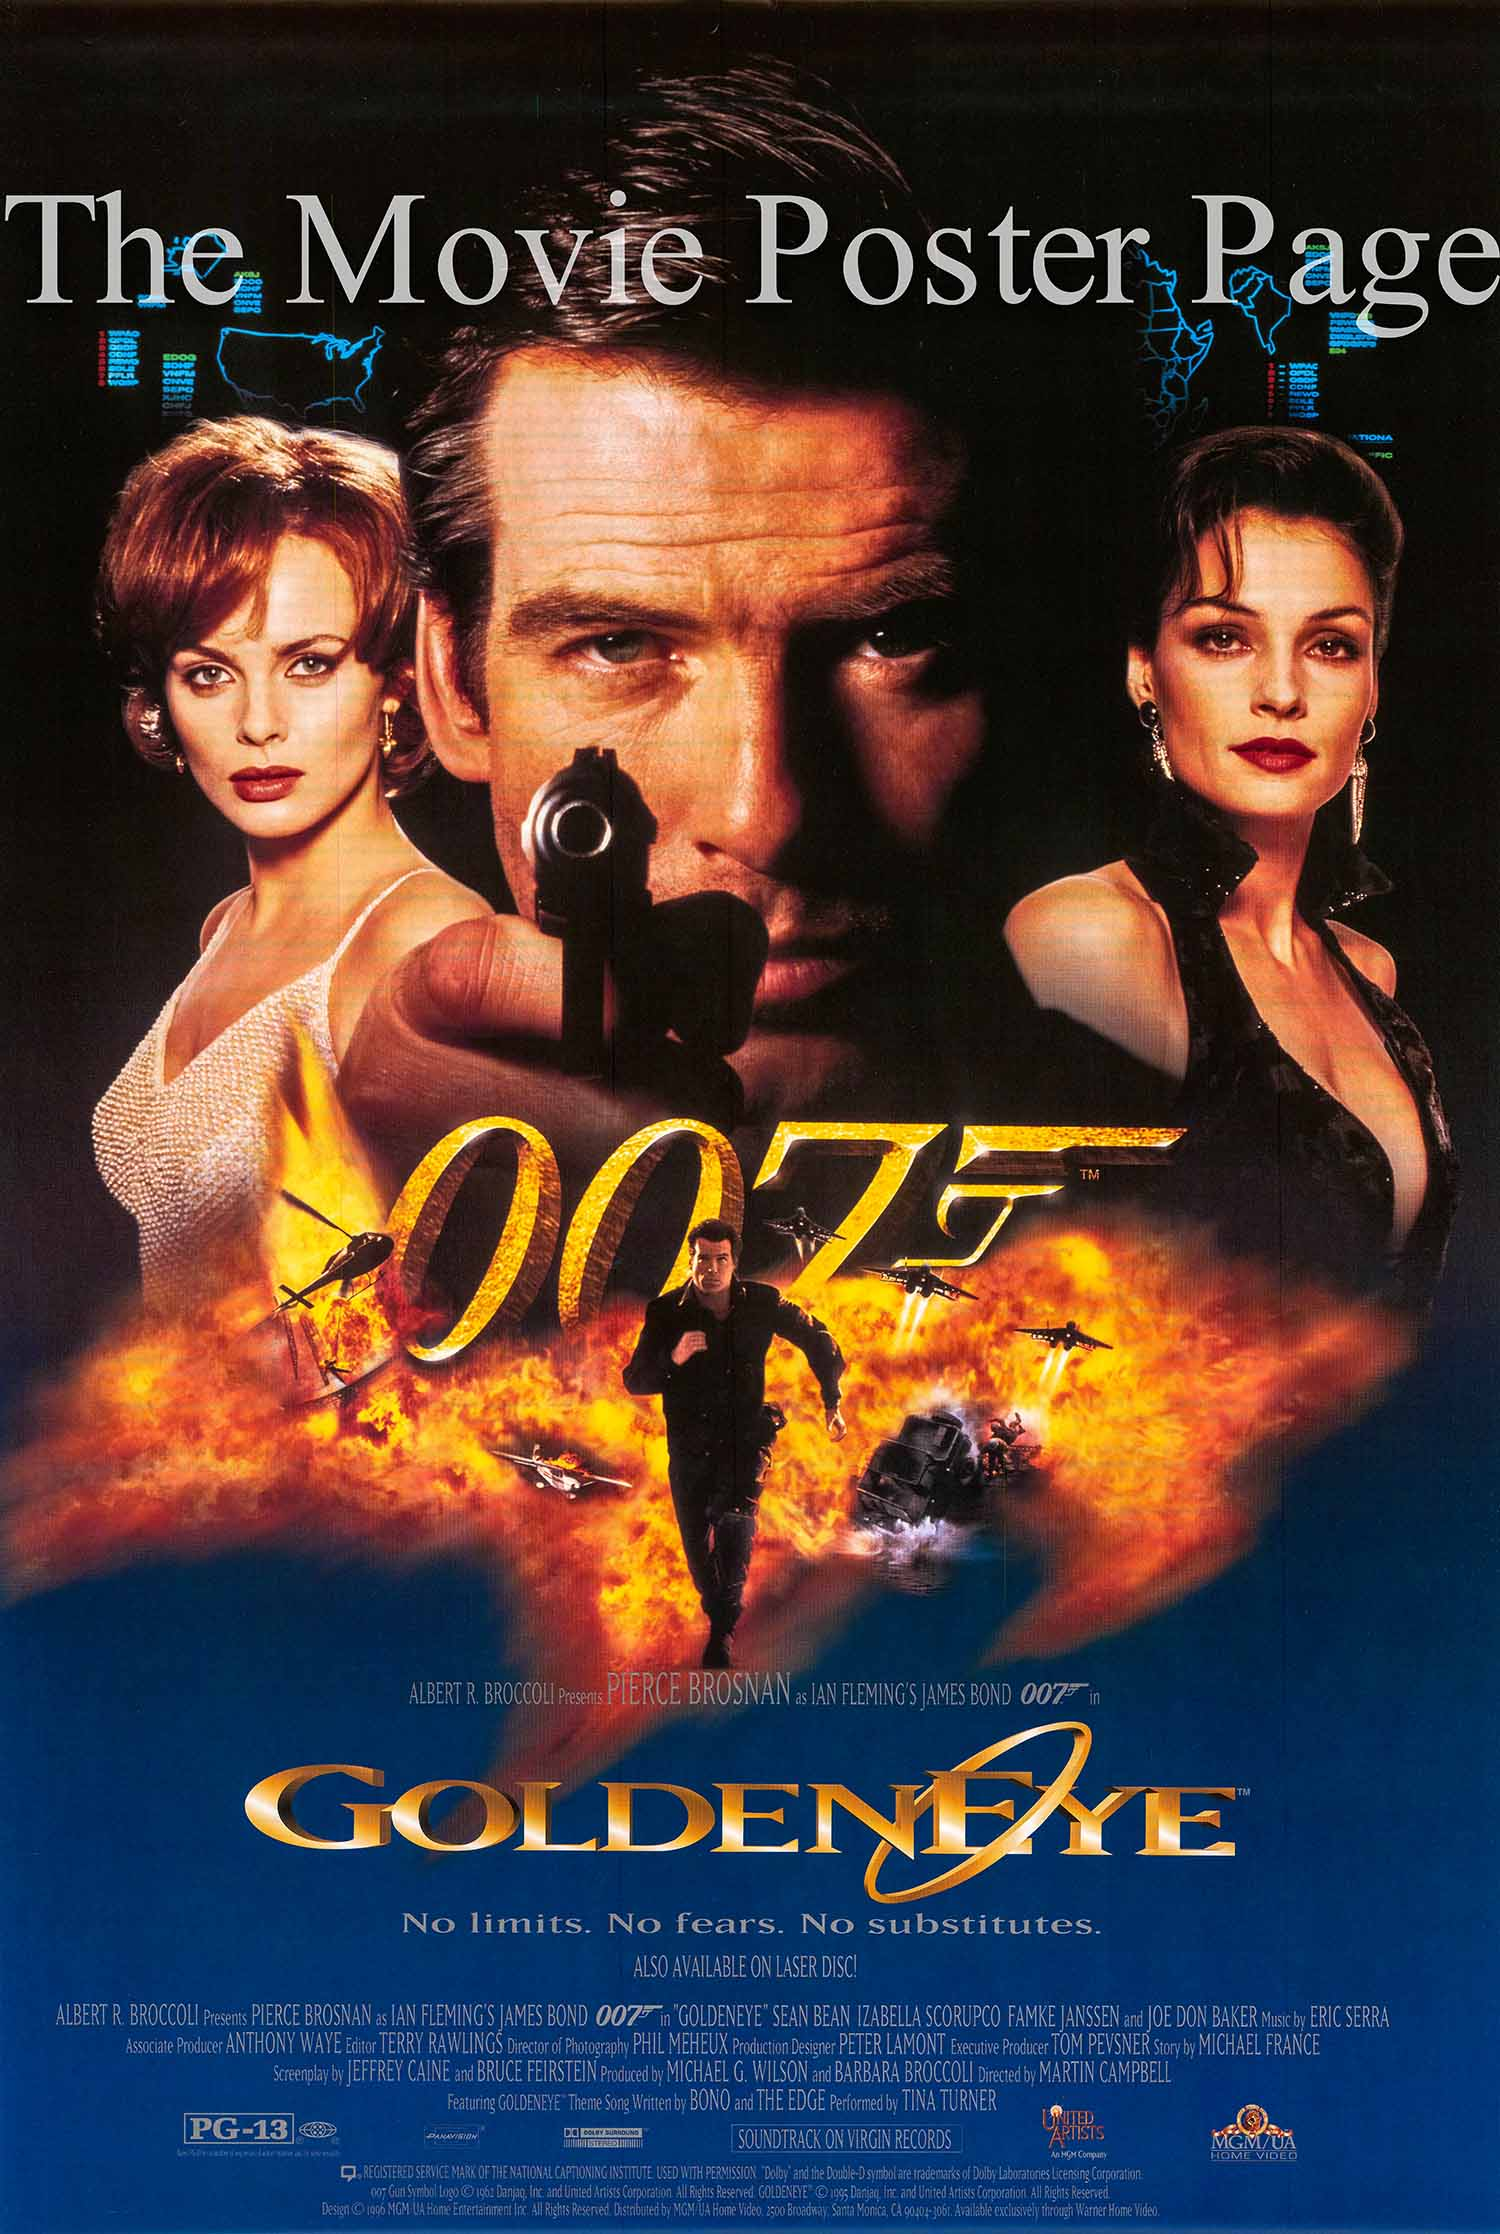 Pictured is the US video poster for the 1995 Martin Campbell film Goldeneye, starring Pierce Brosnan.